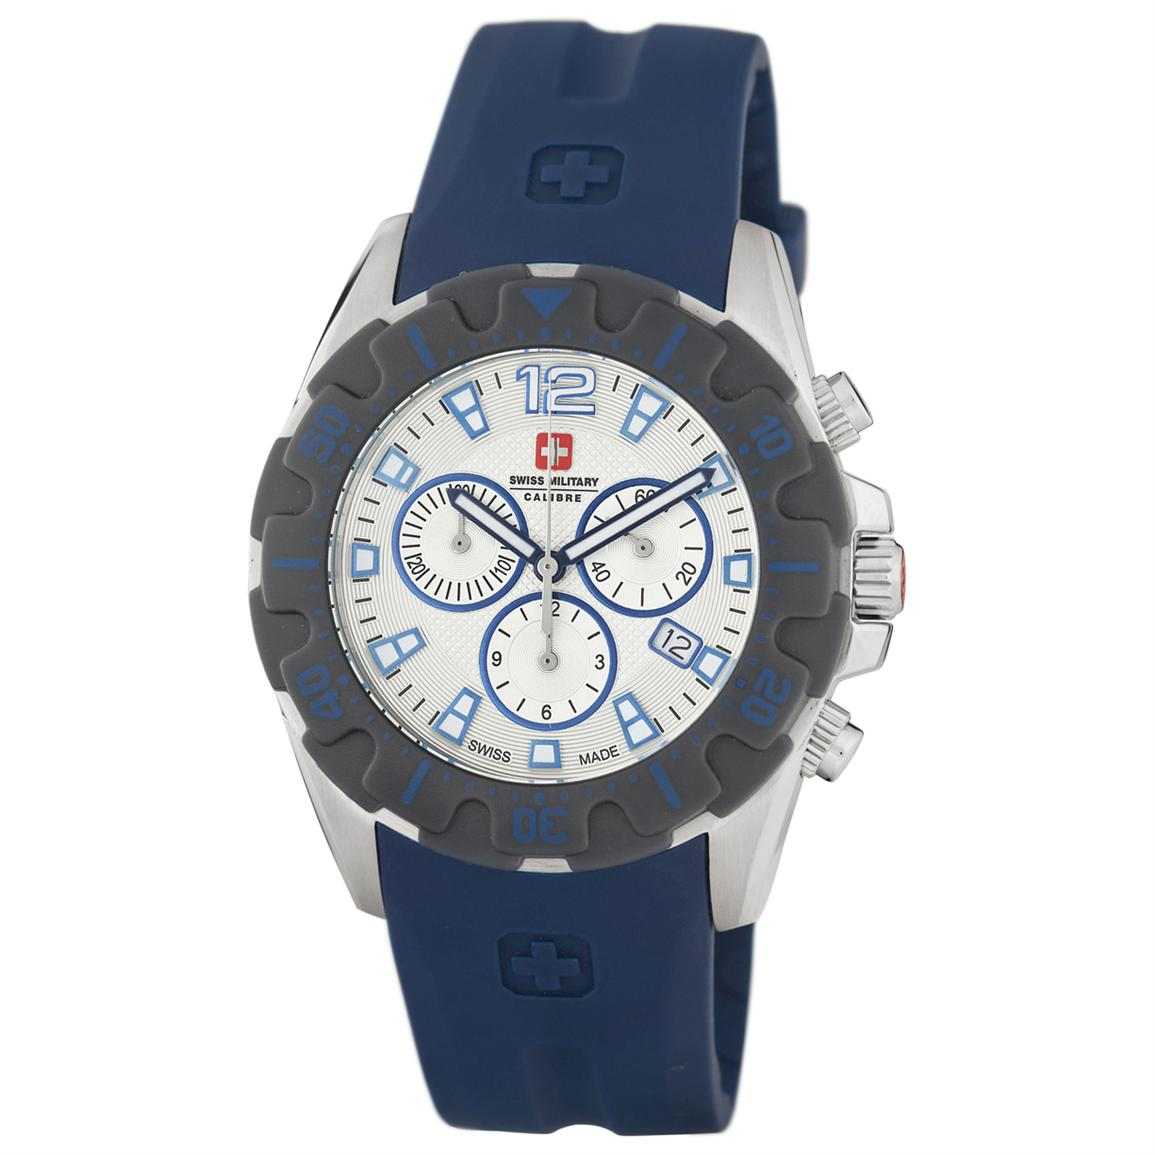 Men's Swiss Military Calibre Marine Watch with Chronograph, Blue